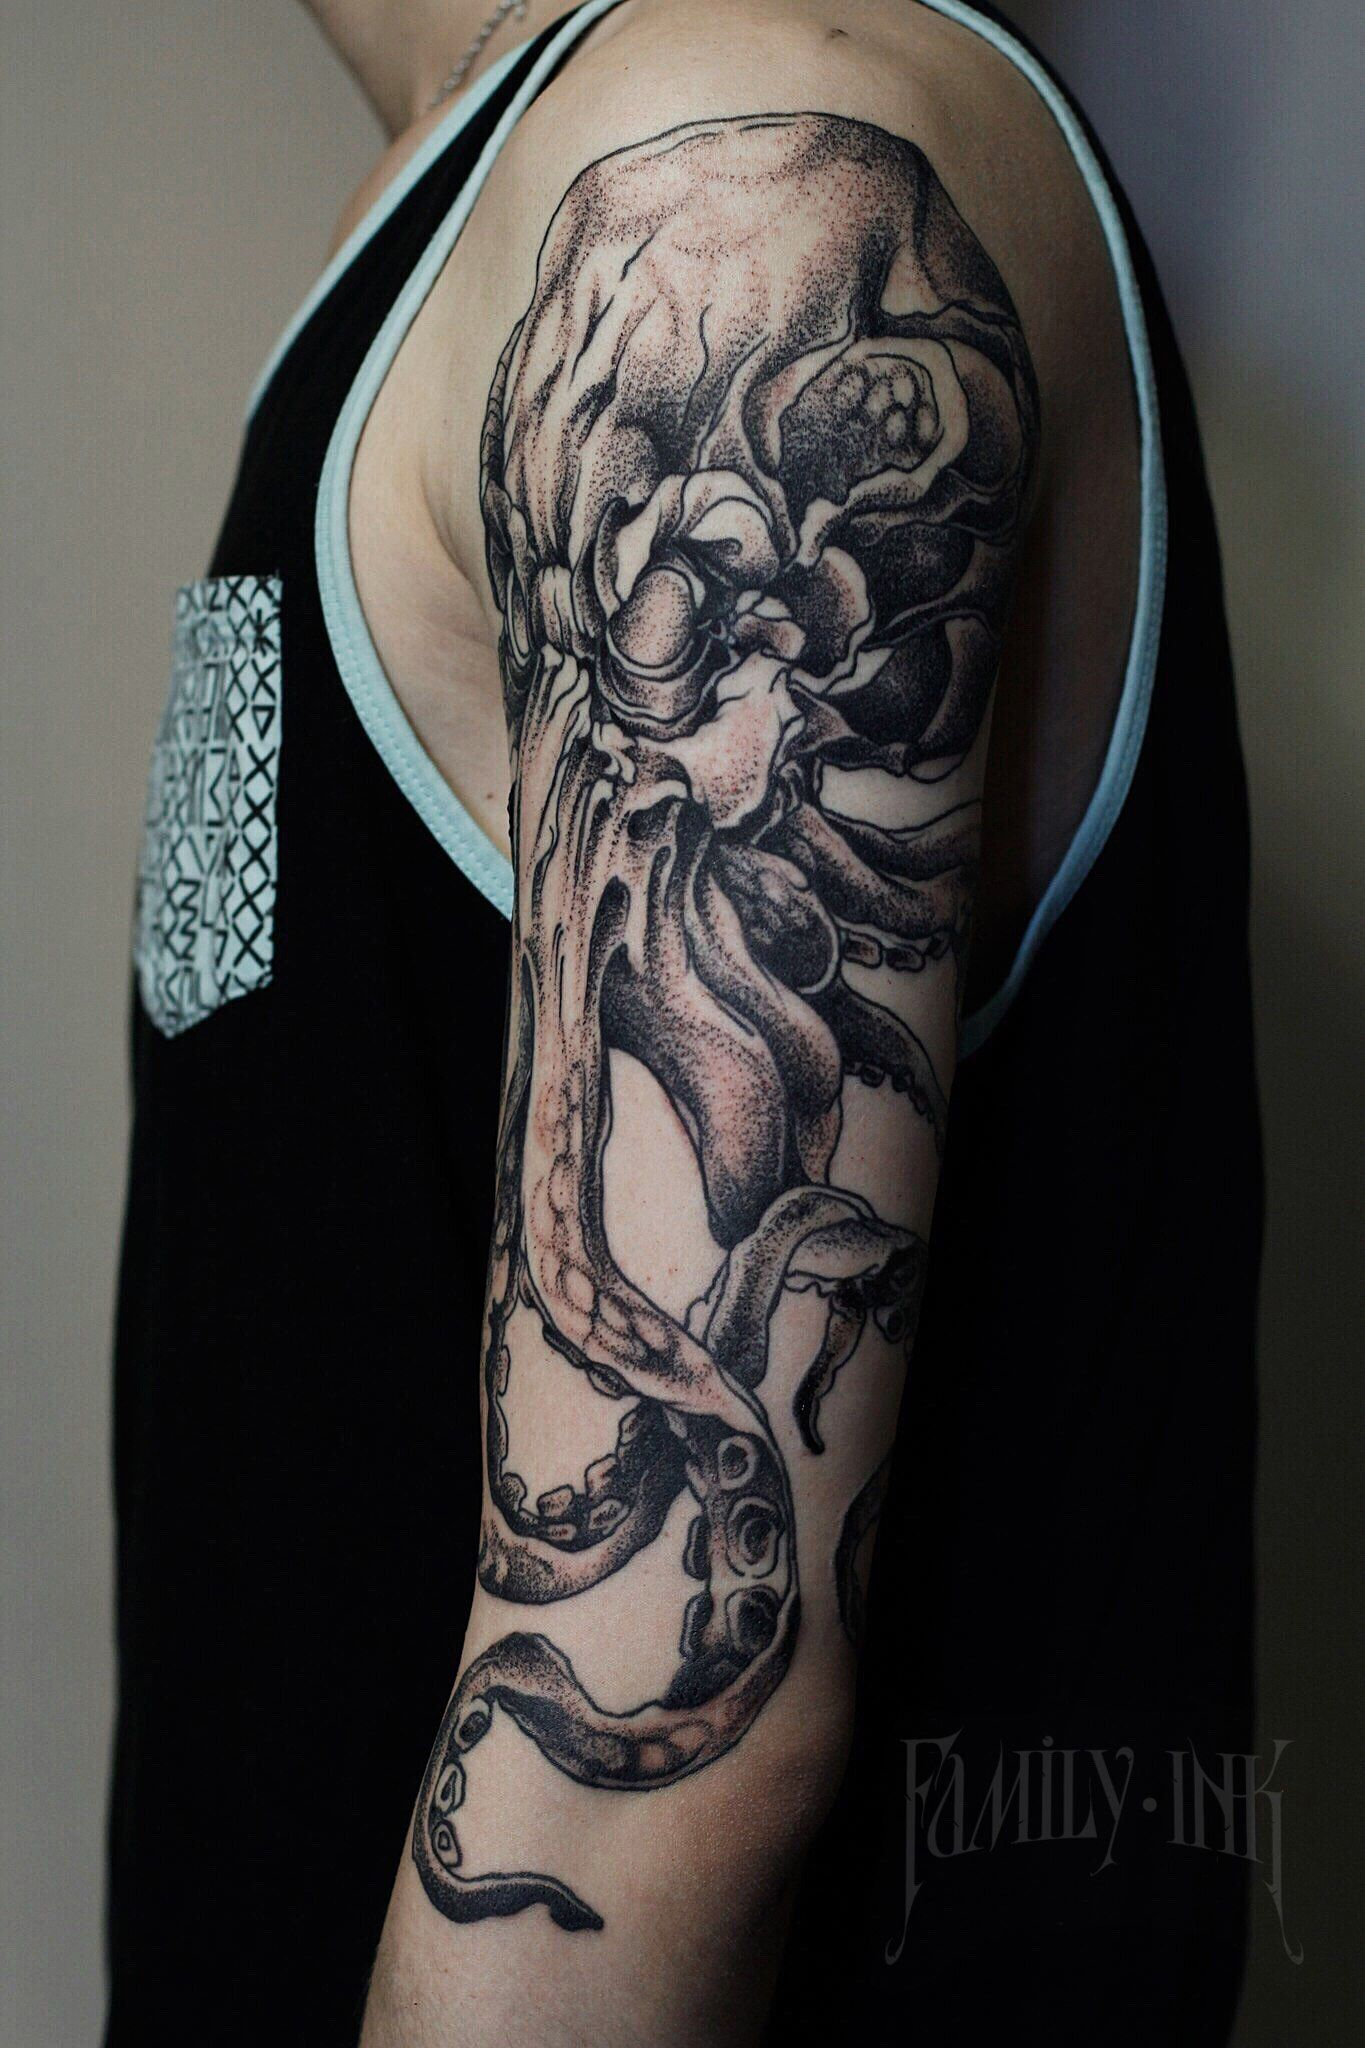 Octopus tattoo sleeve/arm by Family Ink #blackworkers #blacktattooart #blackworktattoo